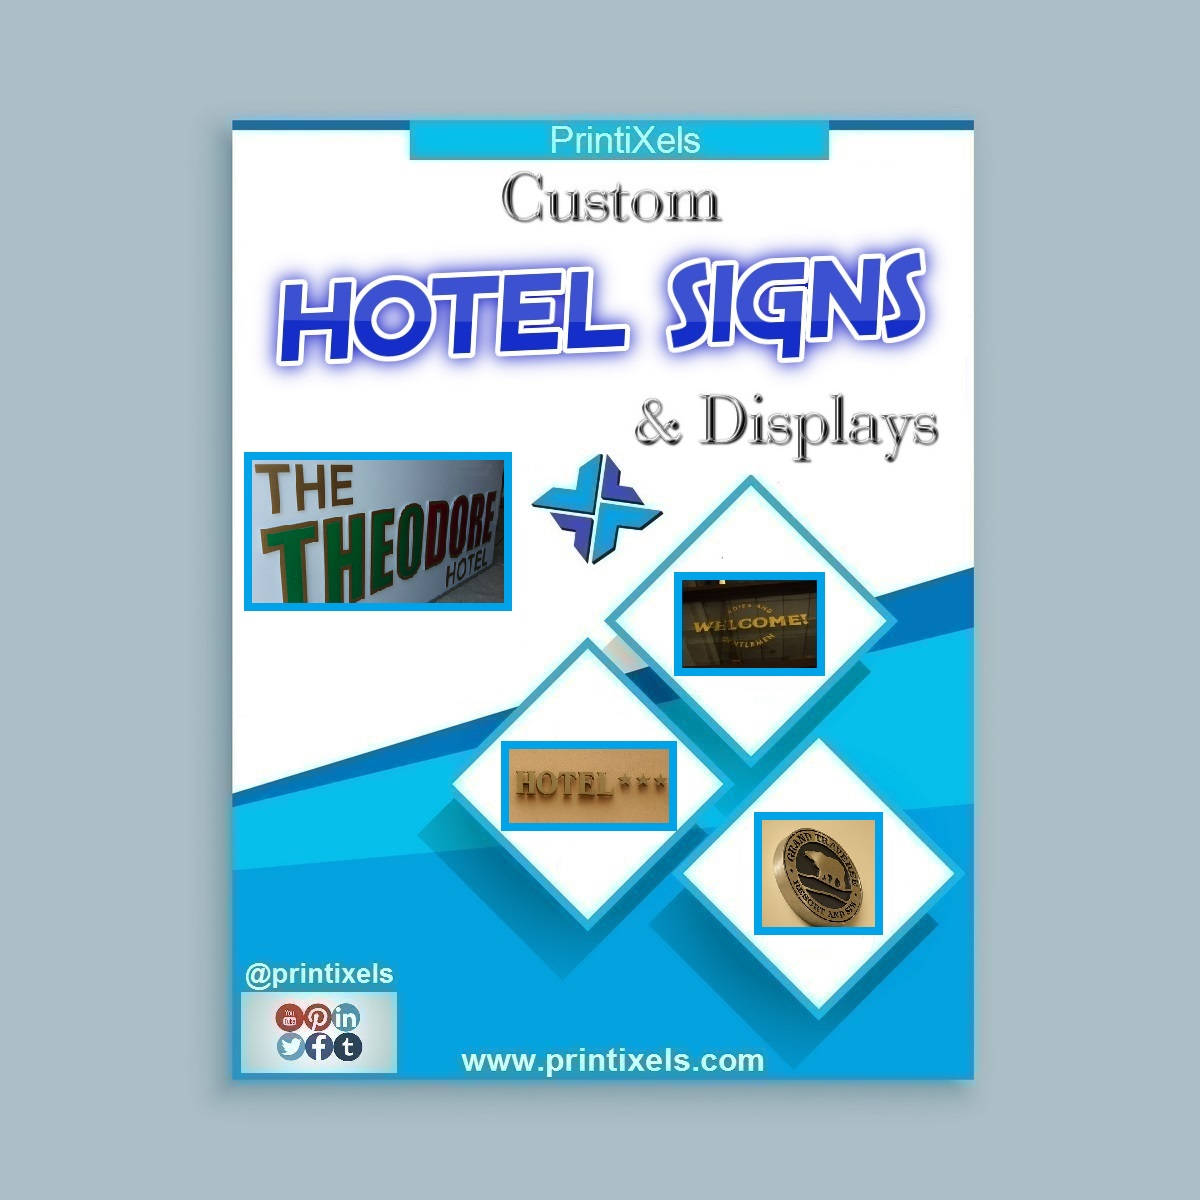 Custom Hotel Signs & Displays